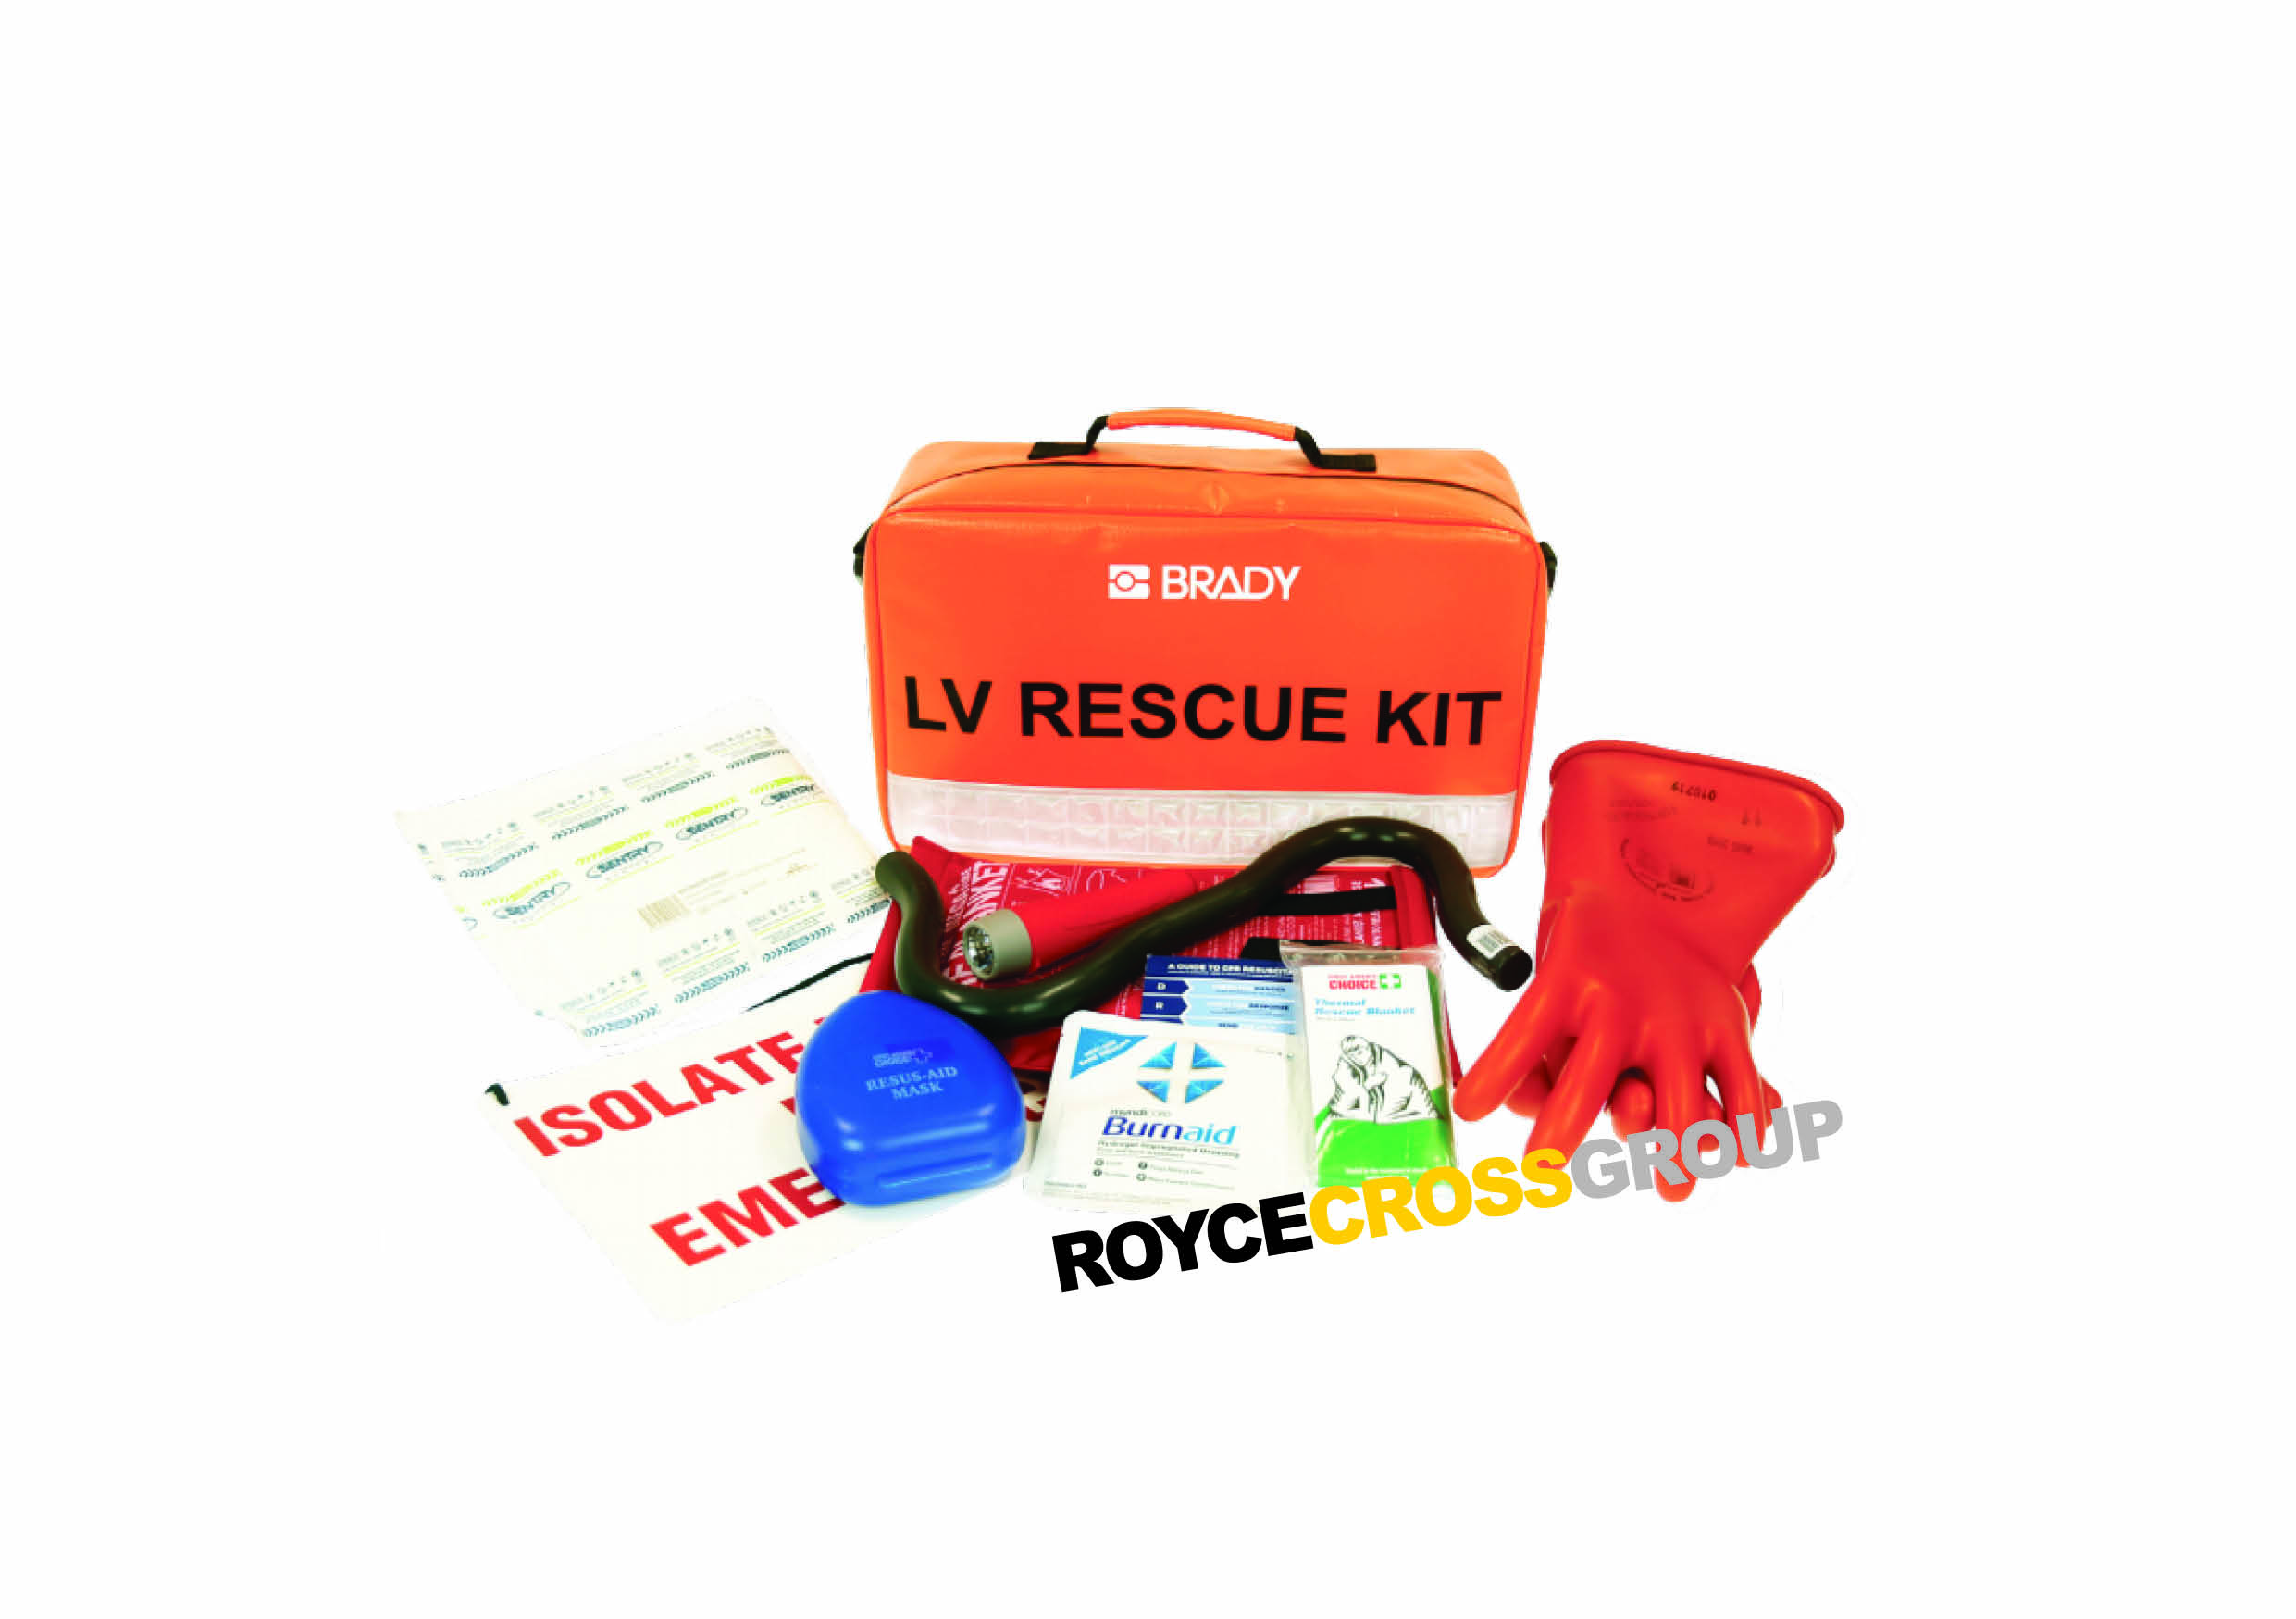 Introducing the new Brady LV rescue kit